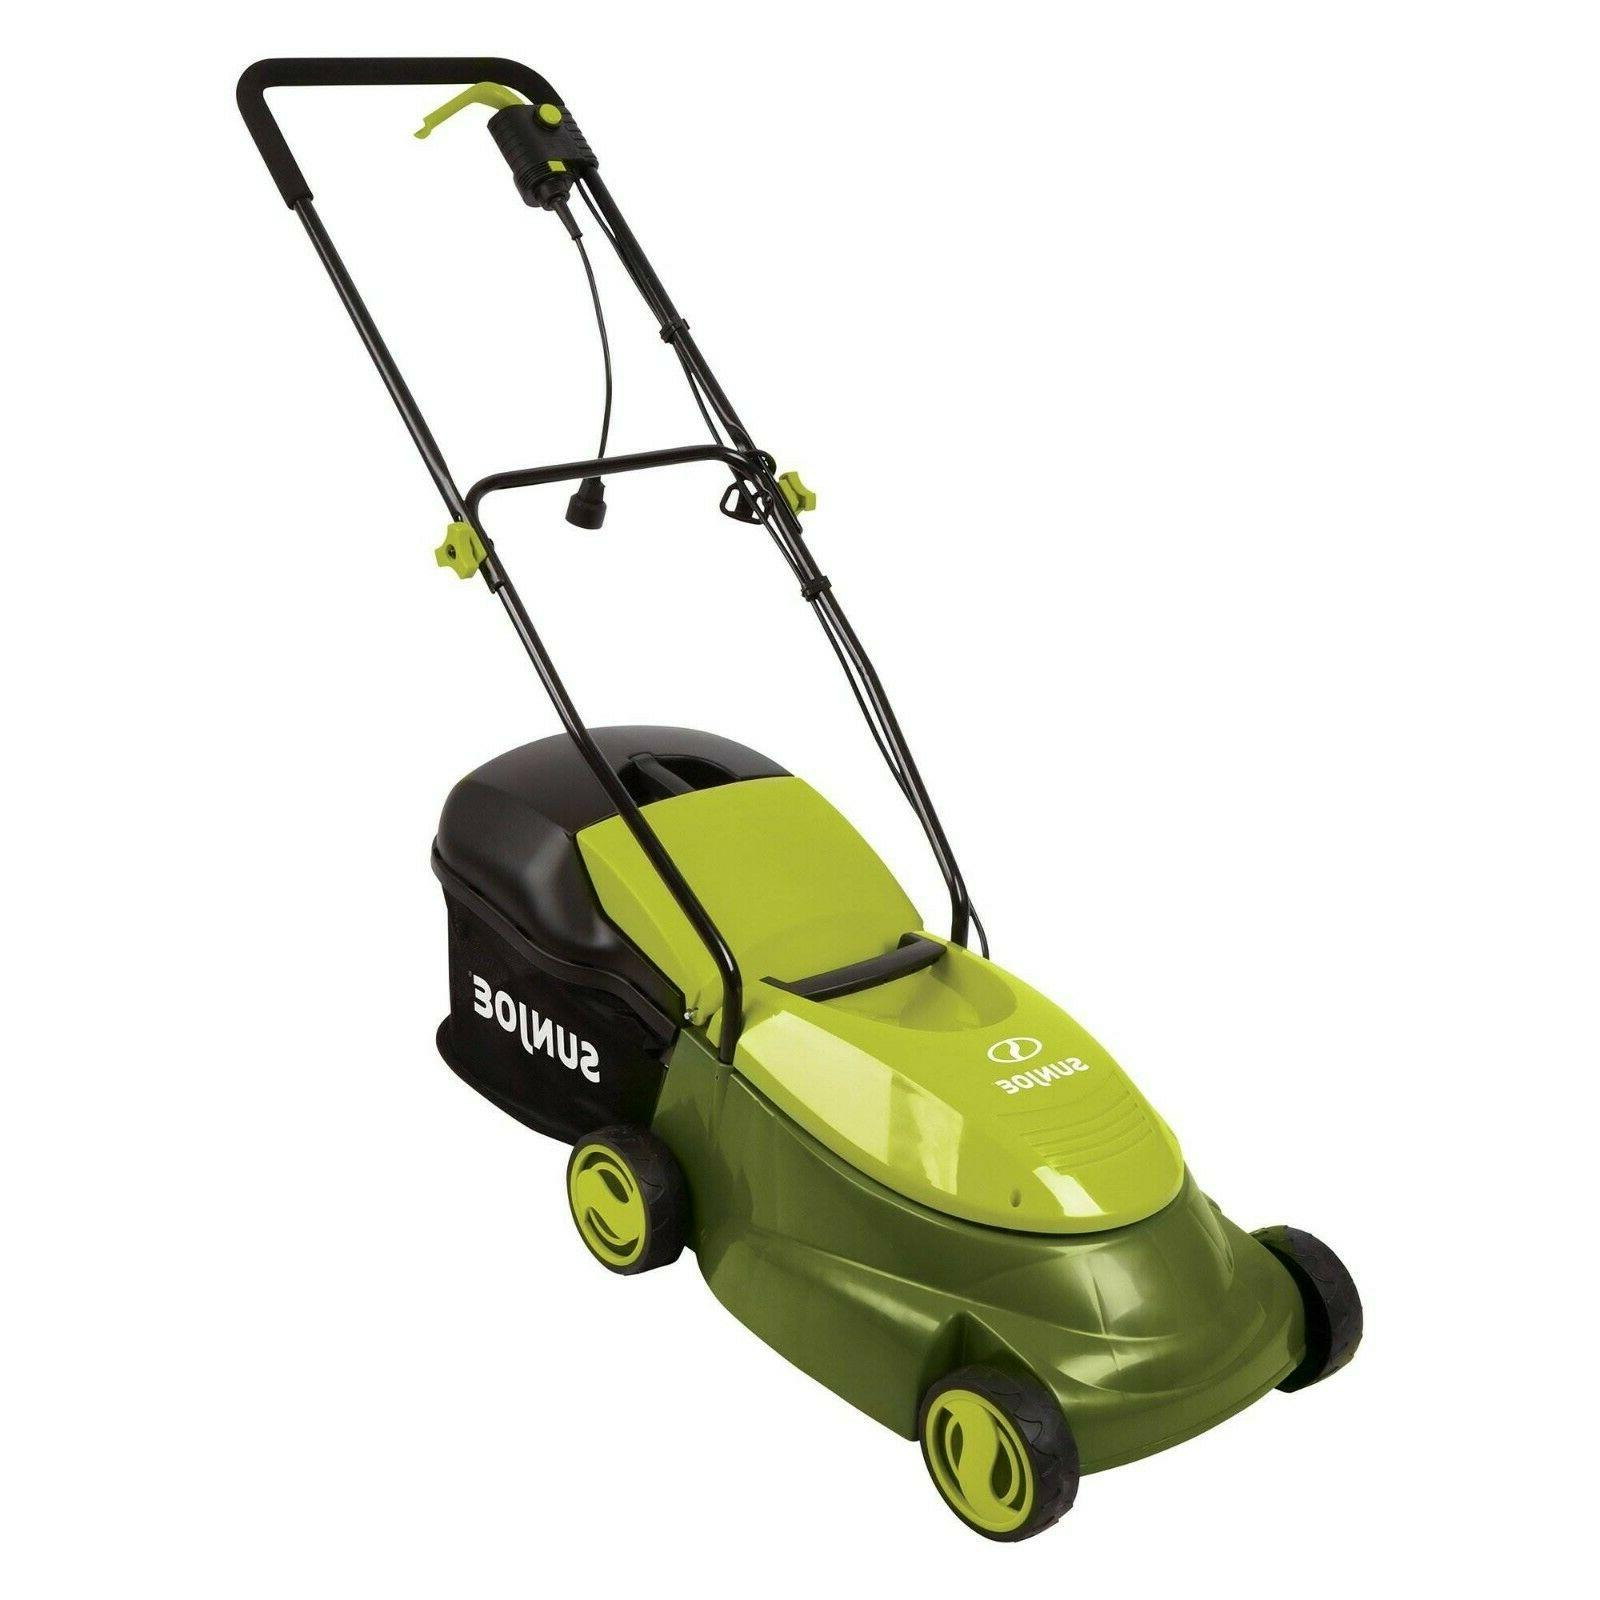 Sun 14 12 Amp Home Electric Corded Behind Lawn Mower Outdoor Green